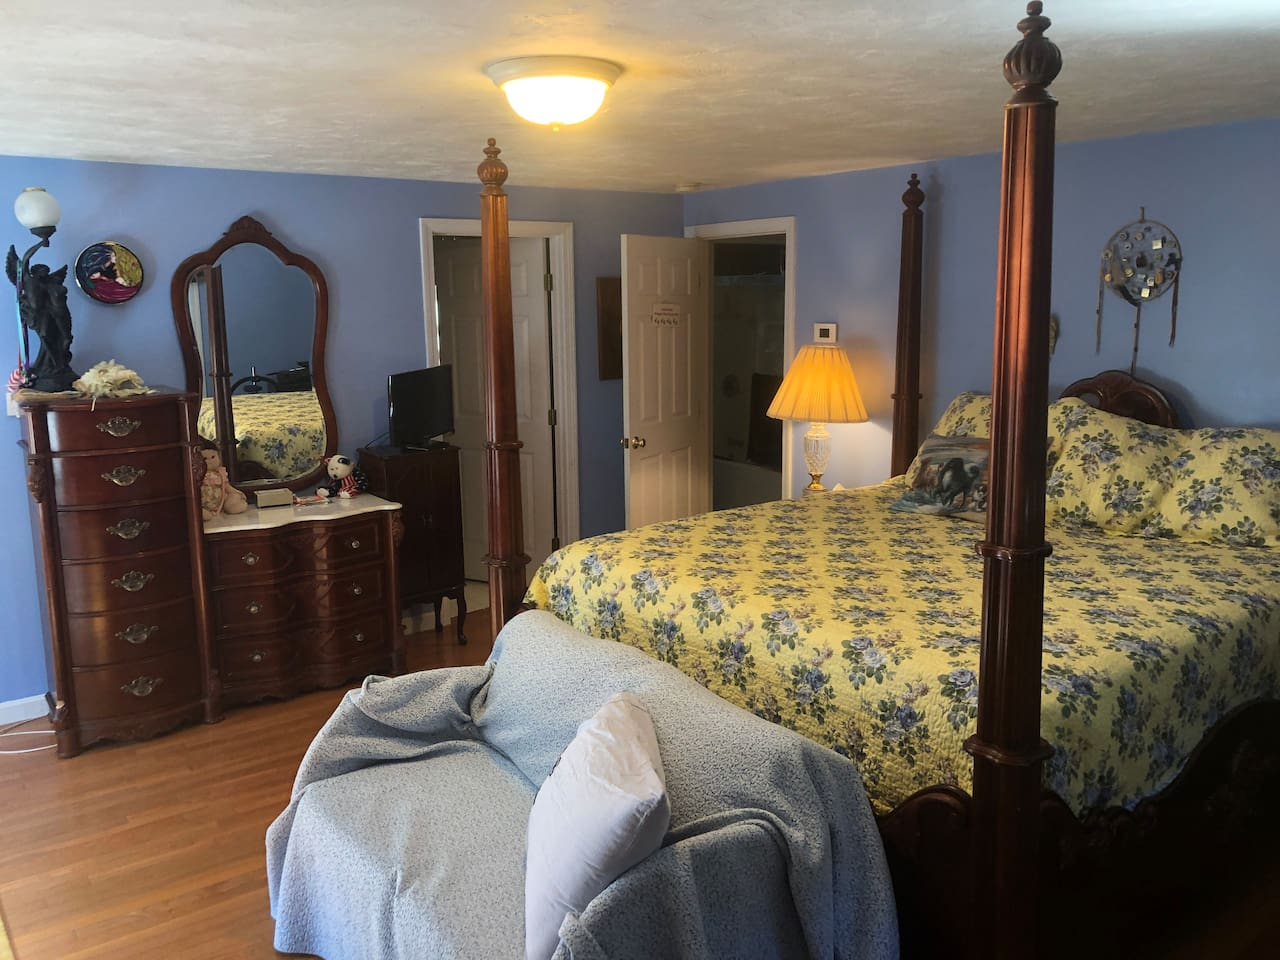 For Dog Lovers only - Private bath and king four poster bed, refrigerator, coffee pot for K cups